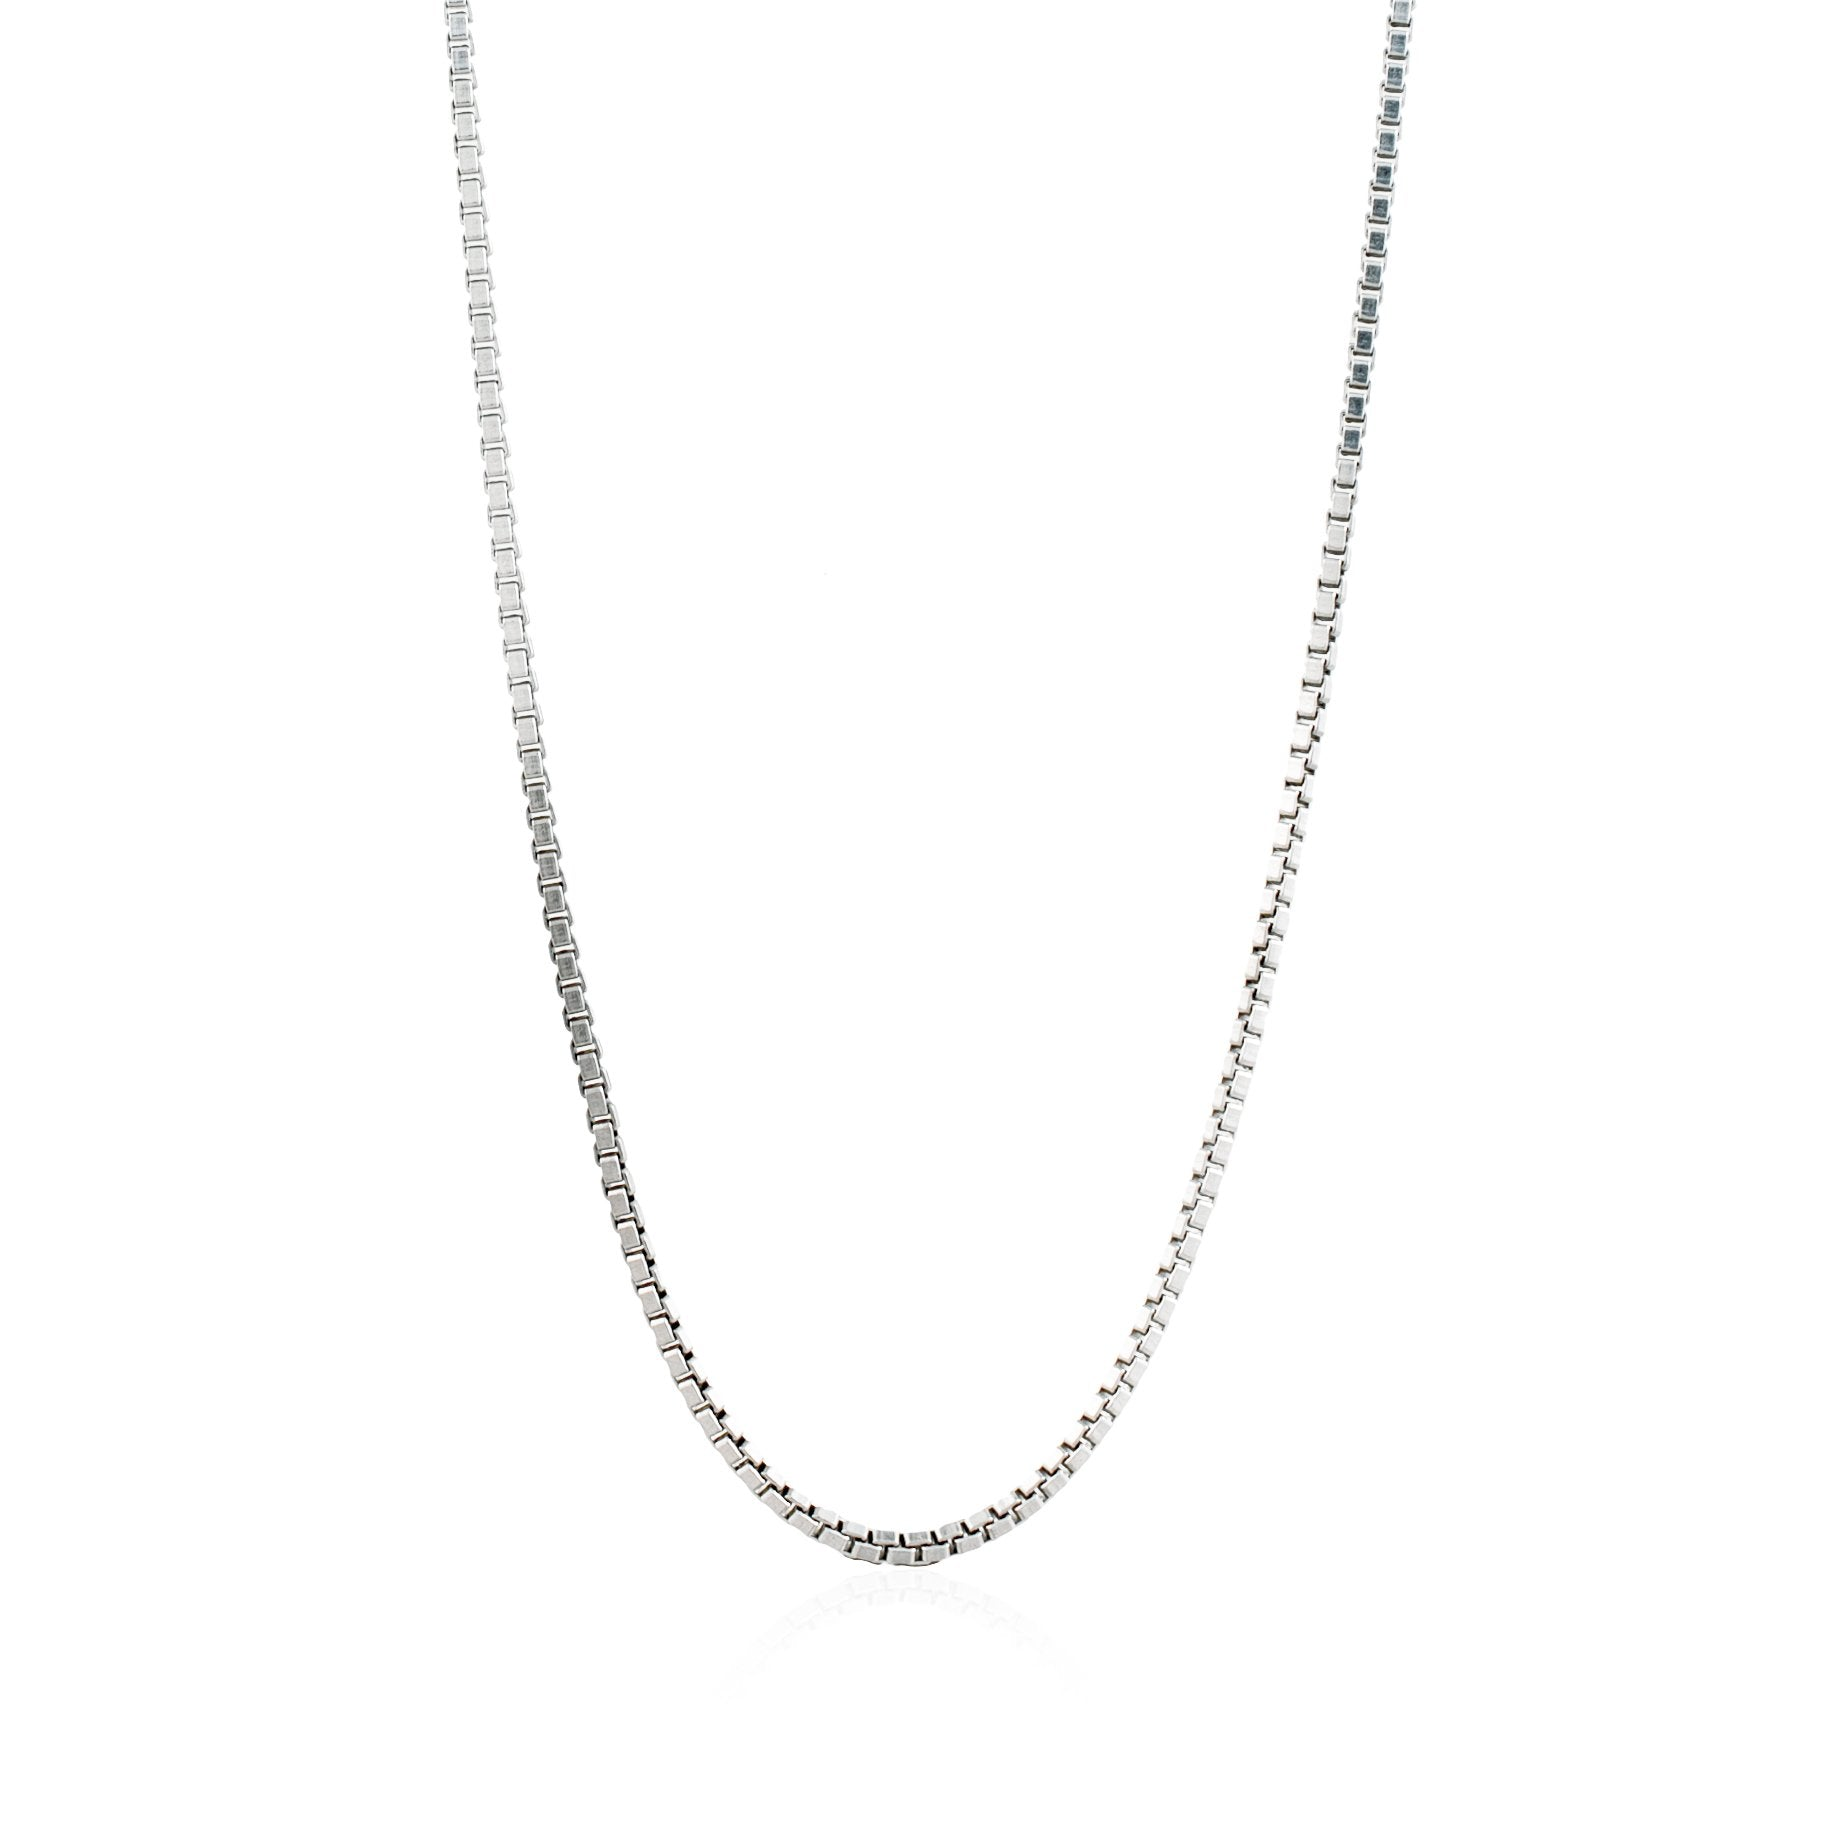 Bahama Box Chain Necklace - Silver